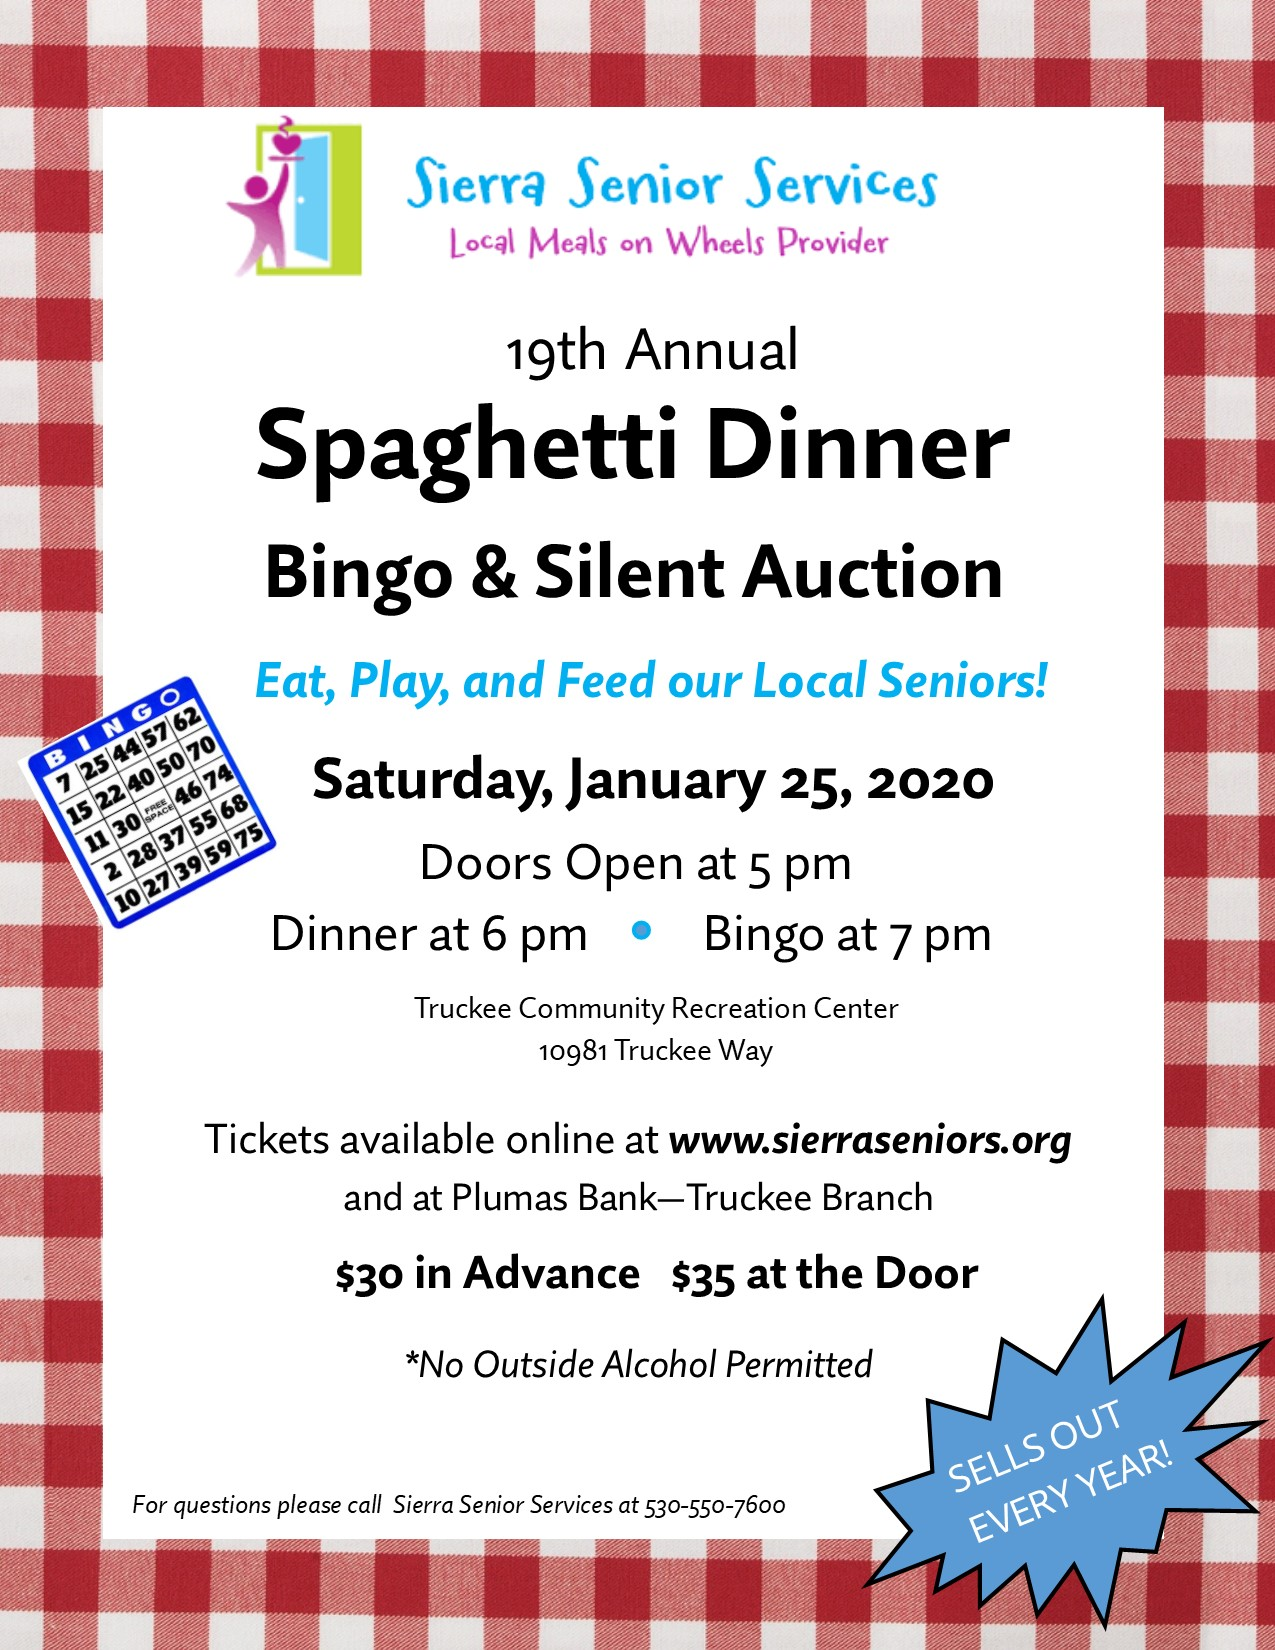 19th Annual Spaghetti Dinner Fundraiser Flyer